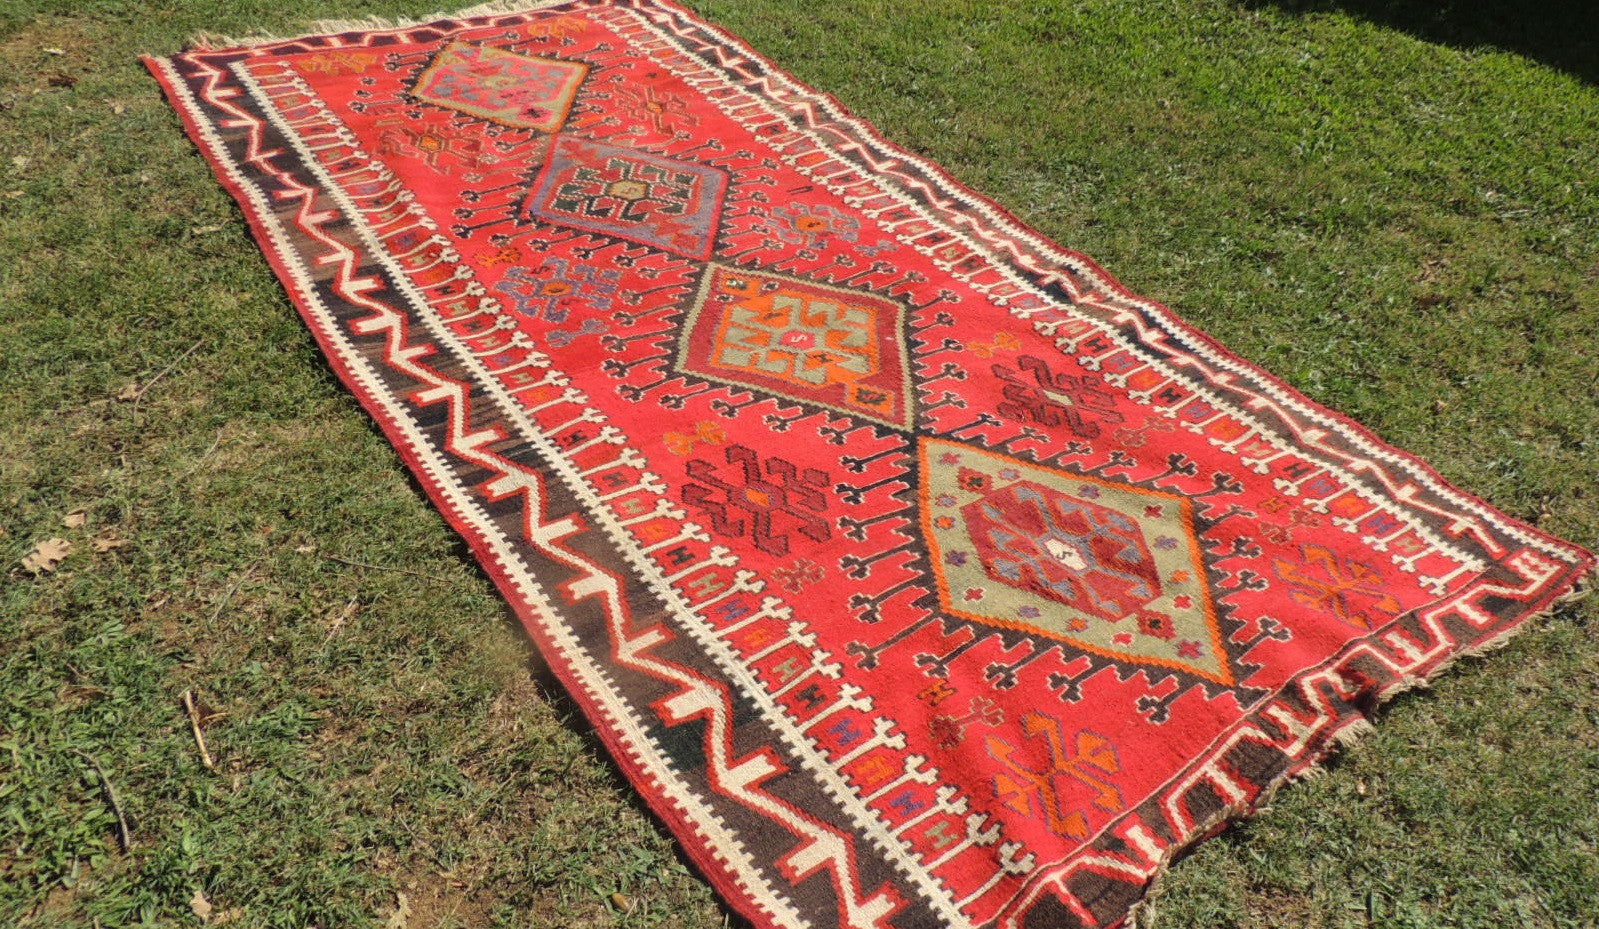 5,4'x11' ft. Red Turkish Runner Kilim 1949 Dated